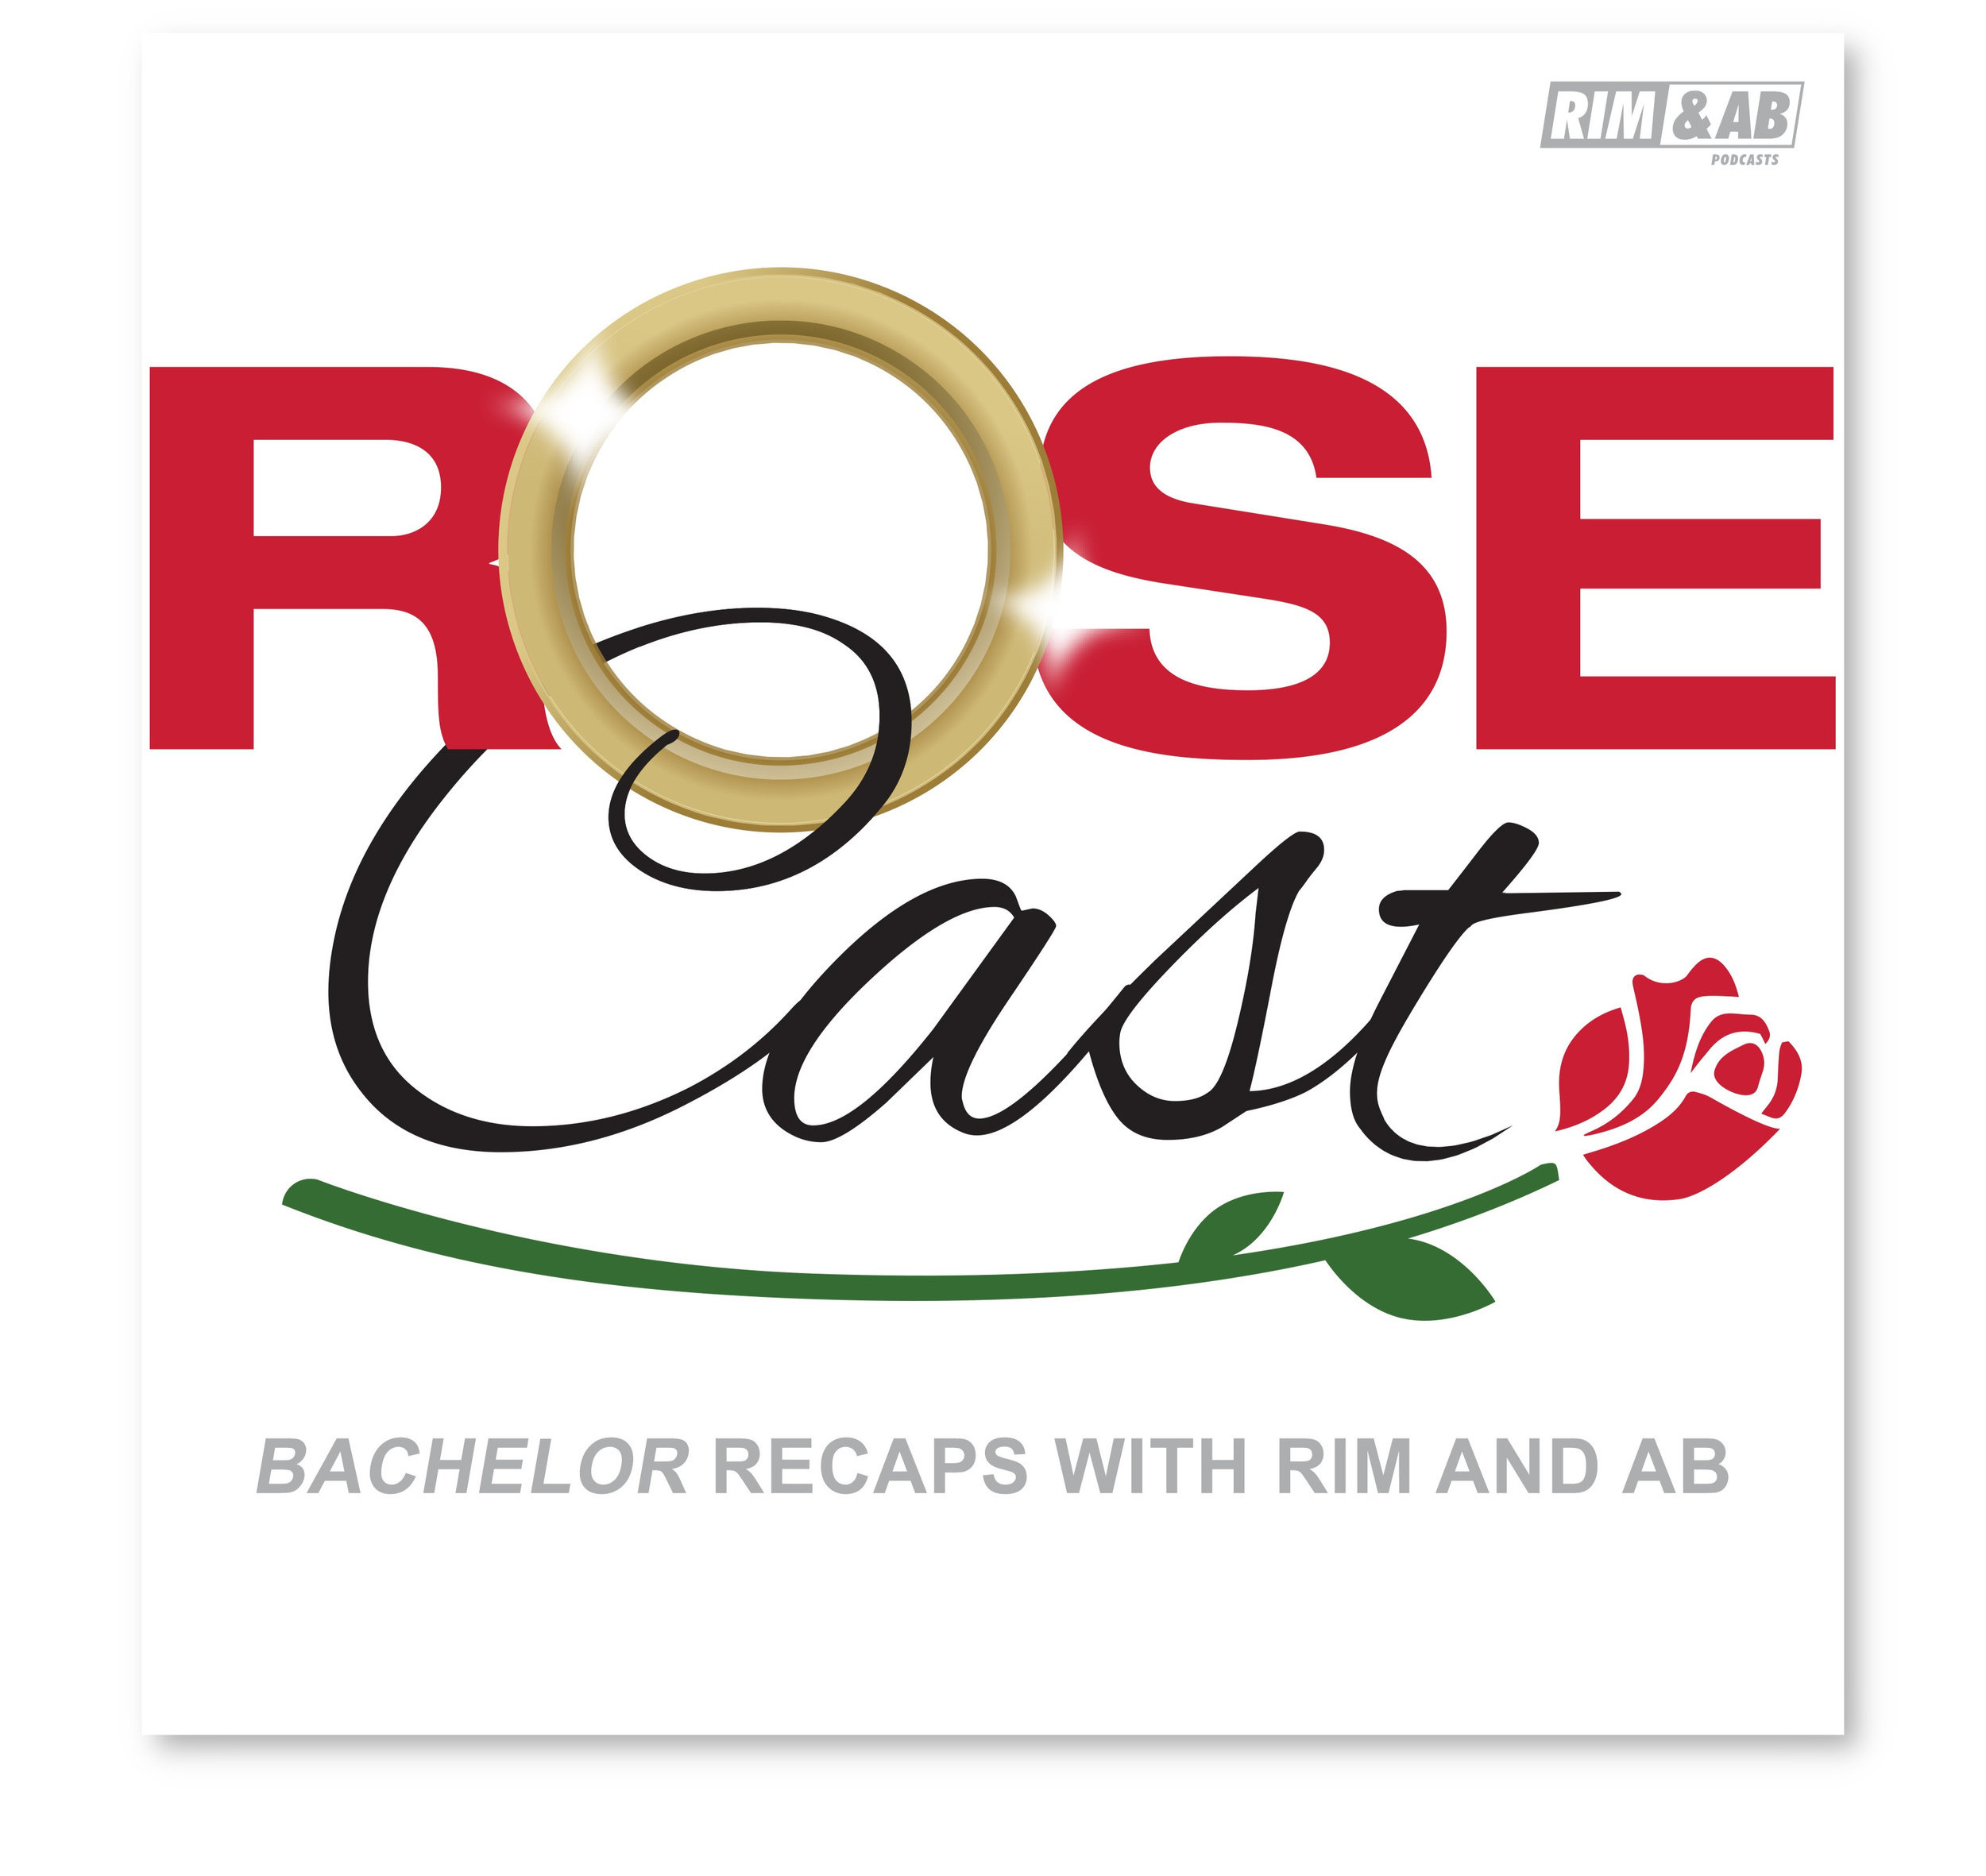 Rosecast+Full+-+NEW+w+Rim+and+AB+logo+drop+shadow.jpg